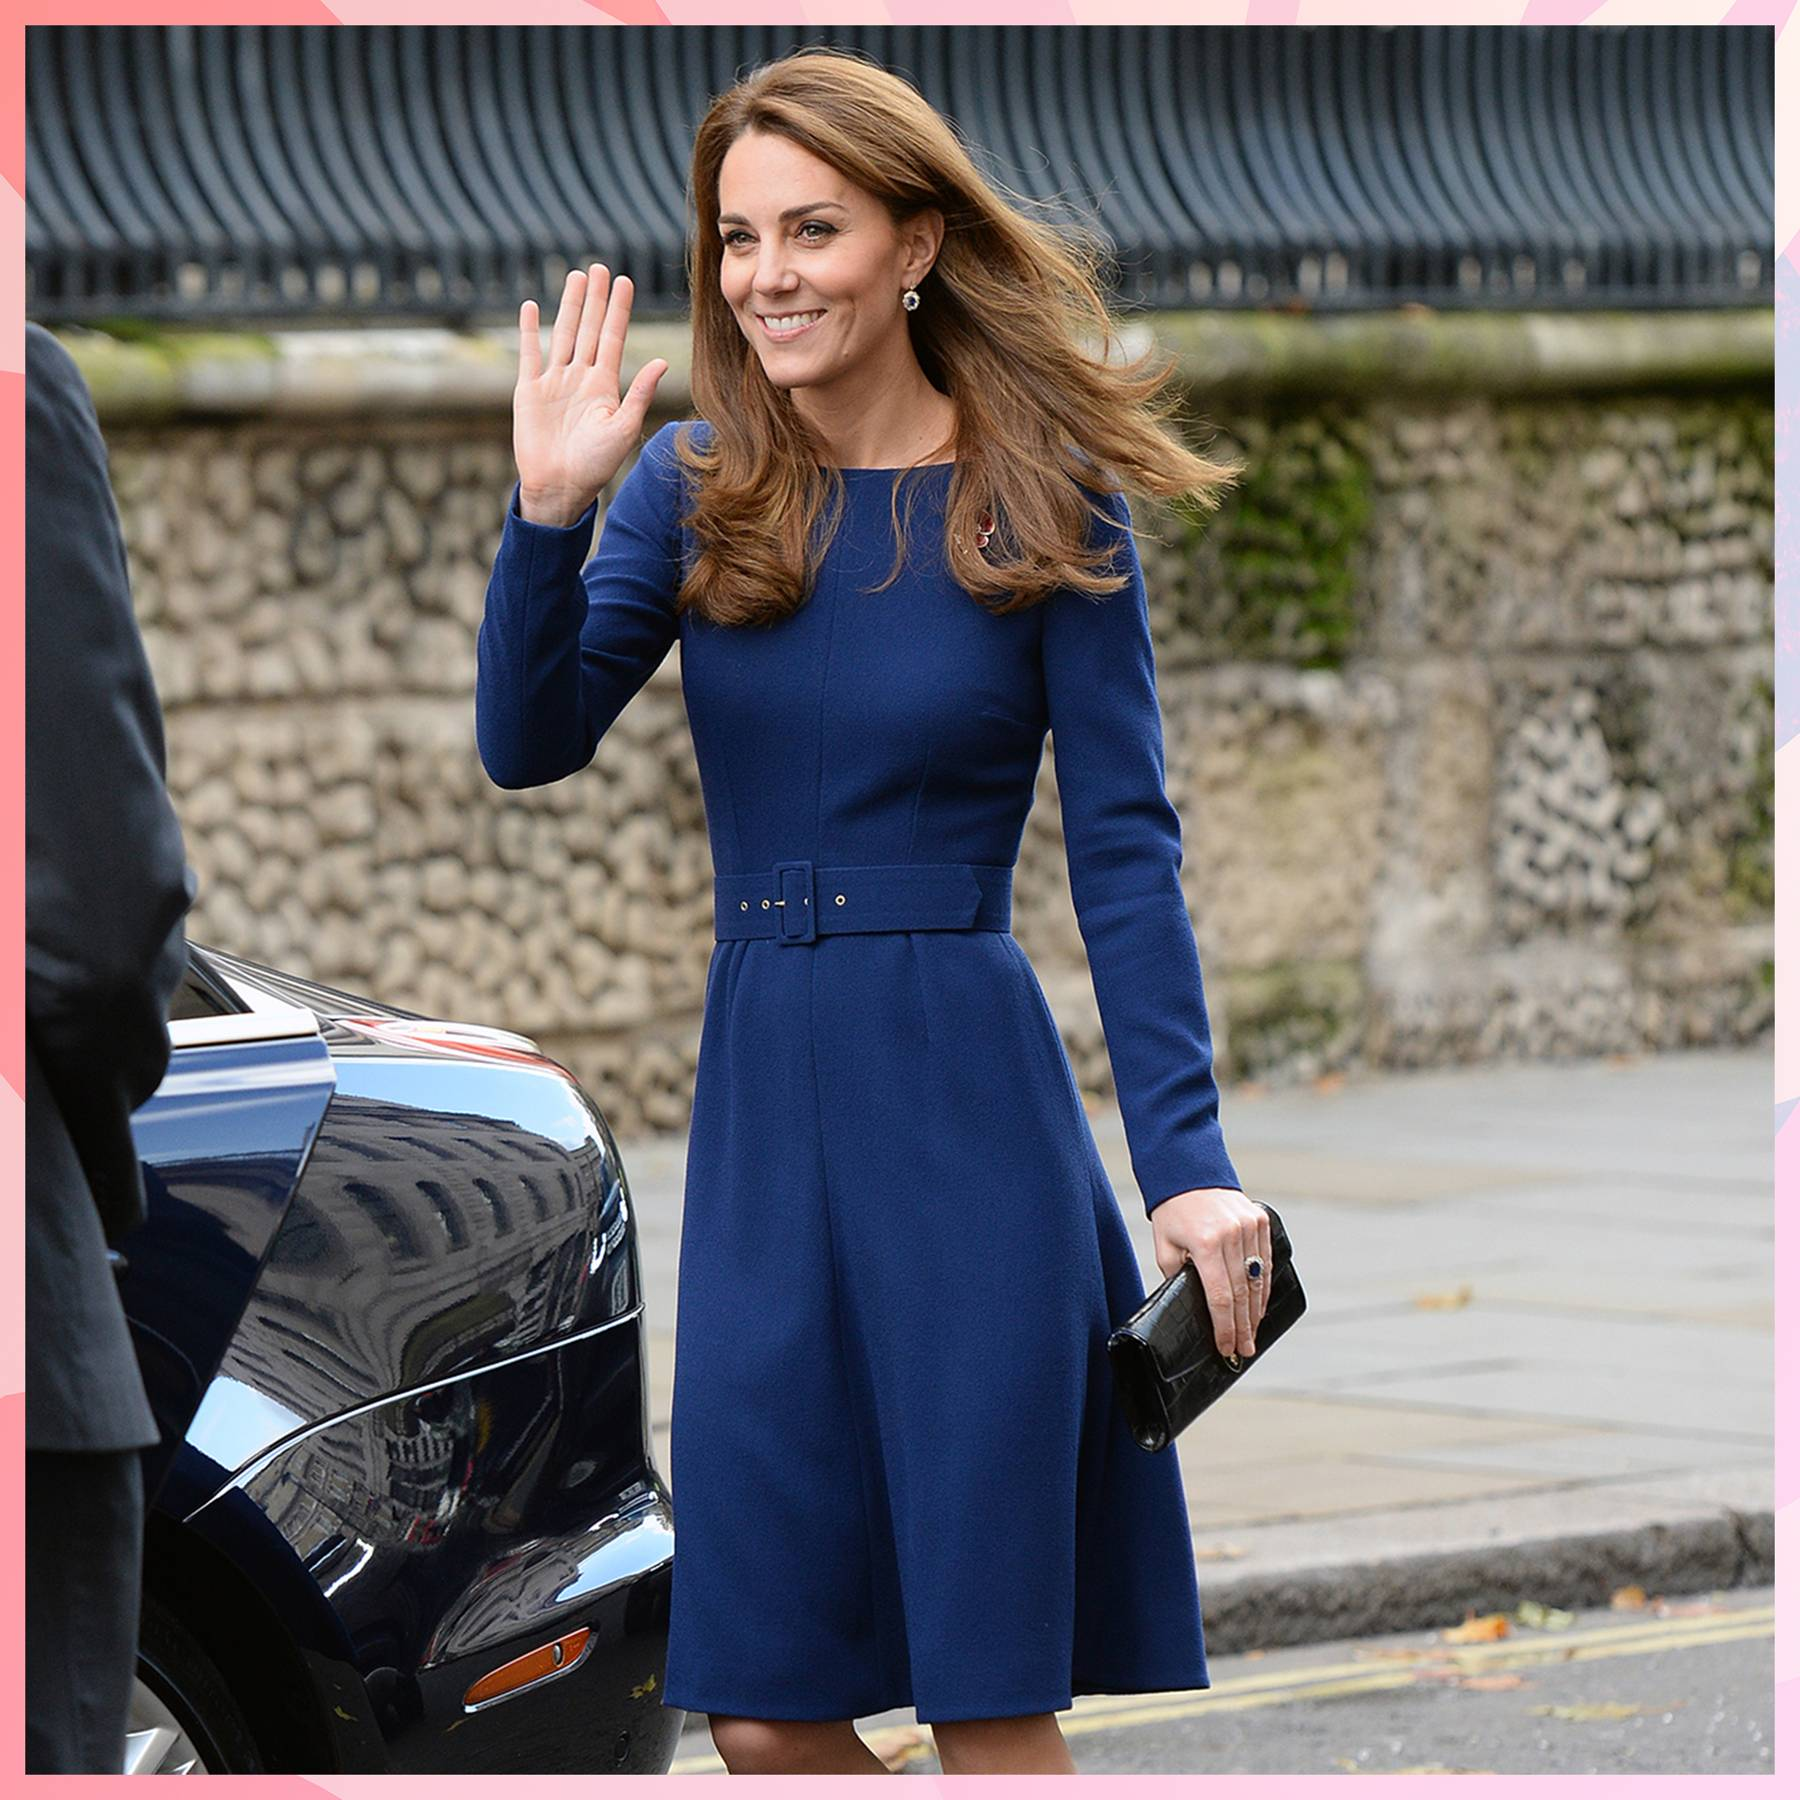 Things we learnt from Kate Middleton wearing the Pantone Colour of the Year